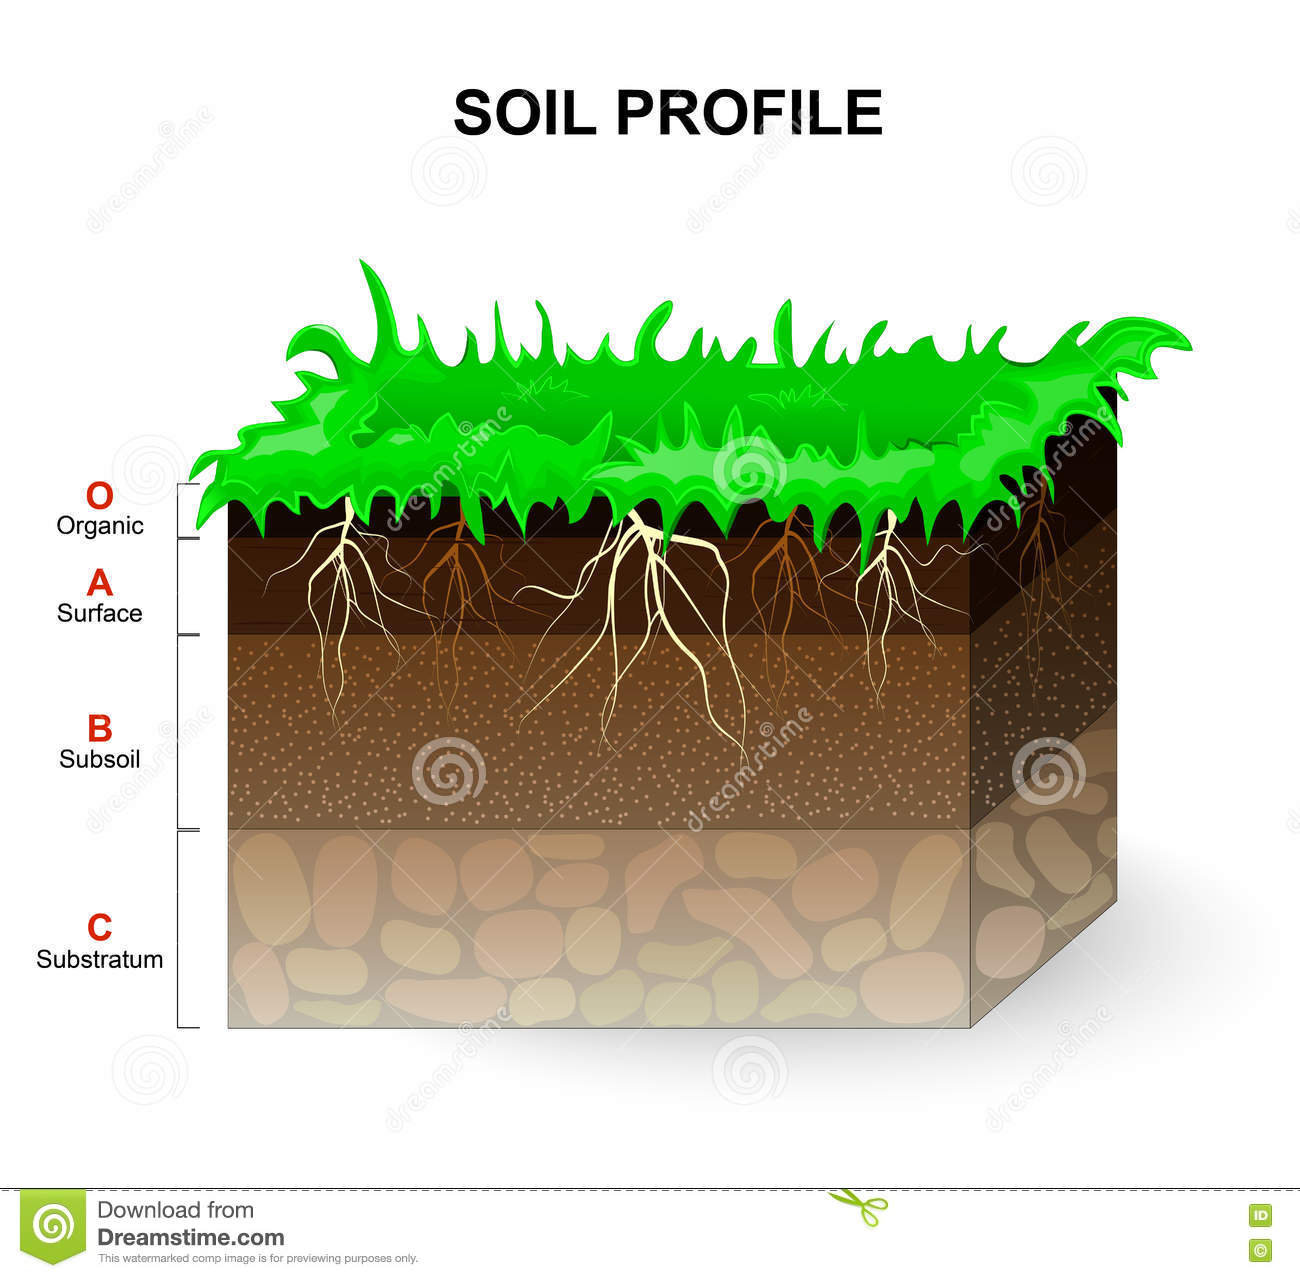 Subsoil cartoons illustrations vector stock images 76 for Soil profile video